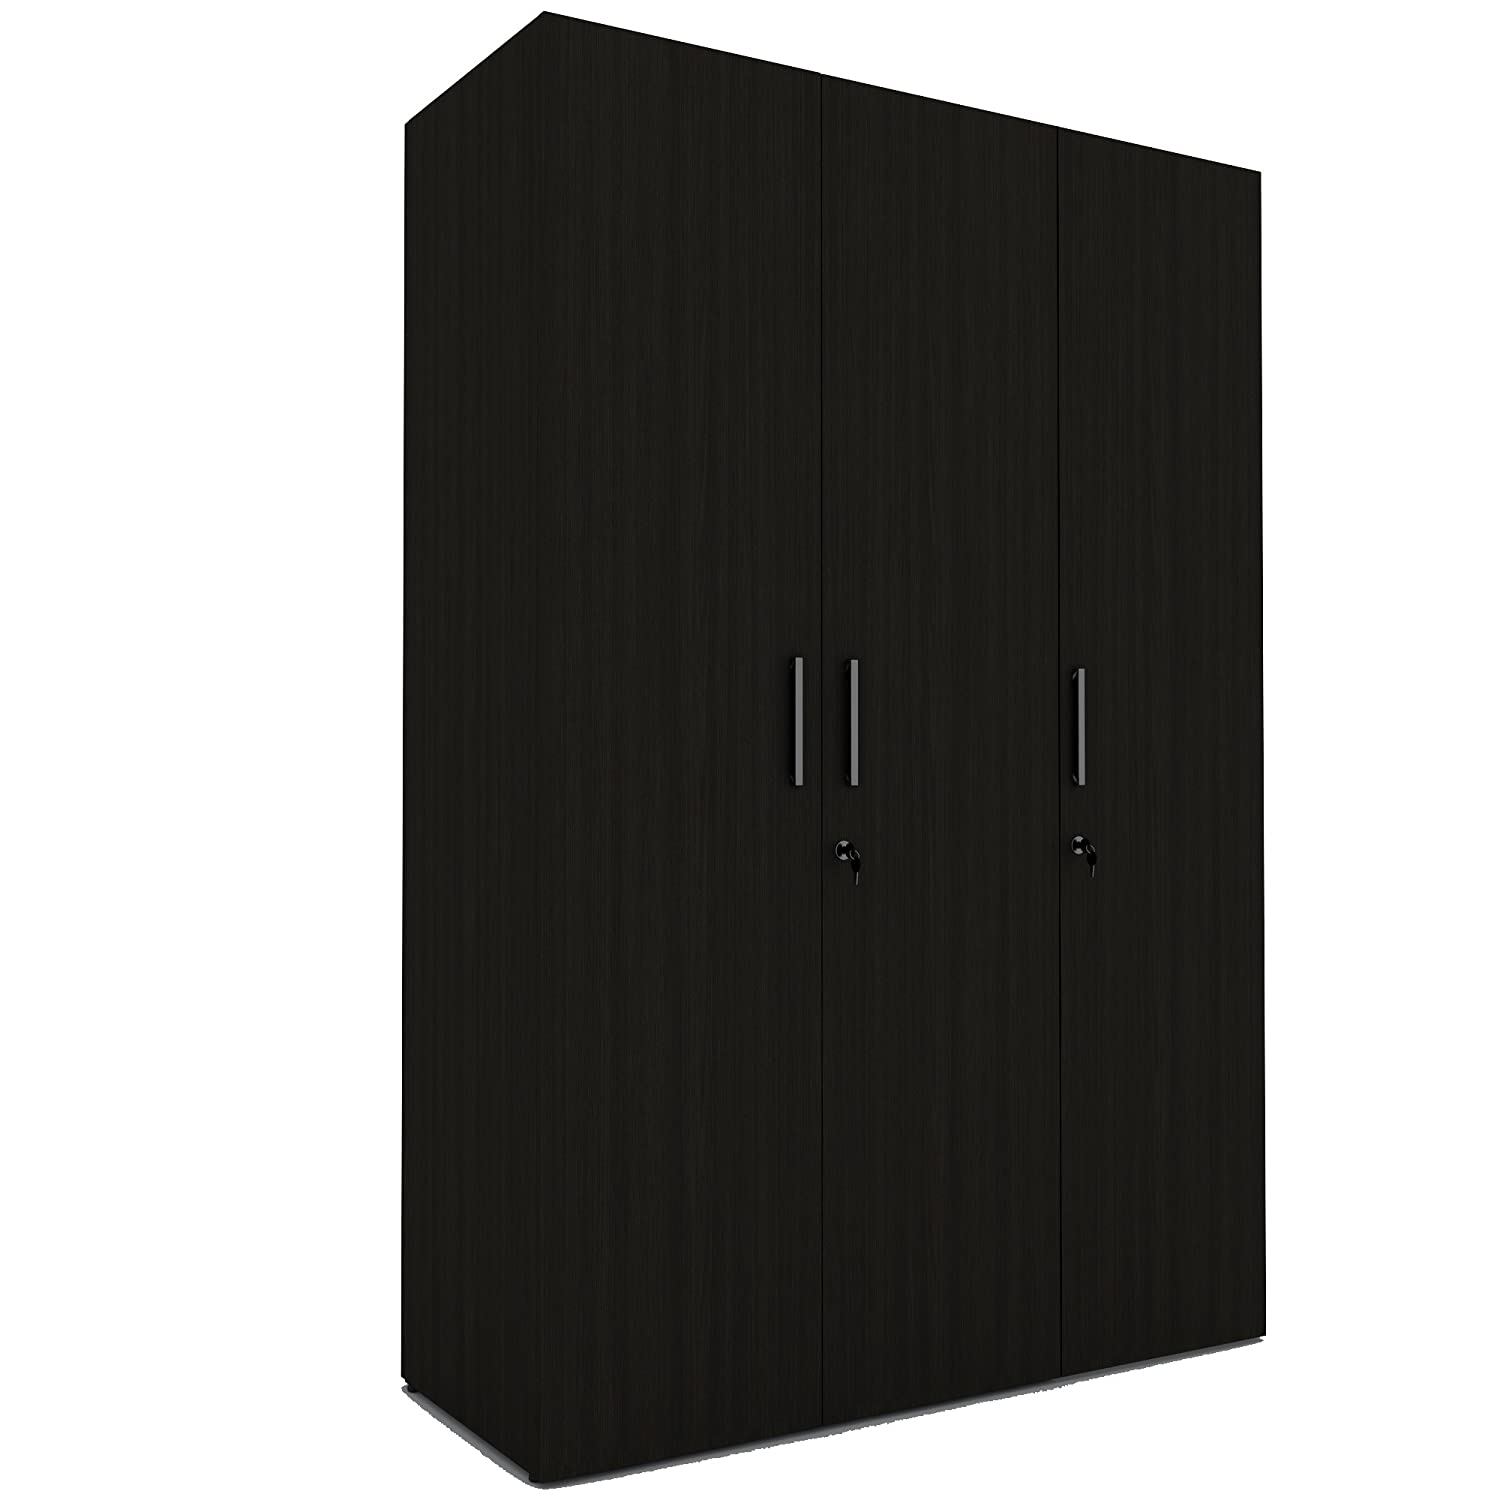 curved accent photos of tambura wardrobes wenge view online most storages buy to wardrobe showing at doors cupboard white recent pertaining sliding furniture attachment